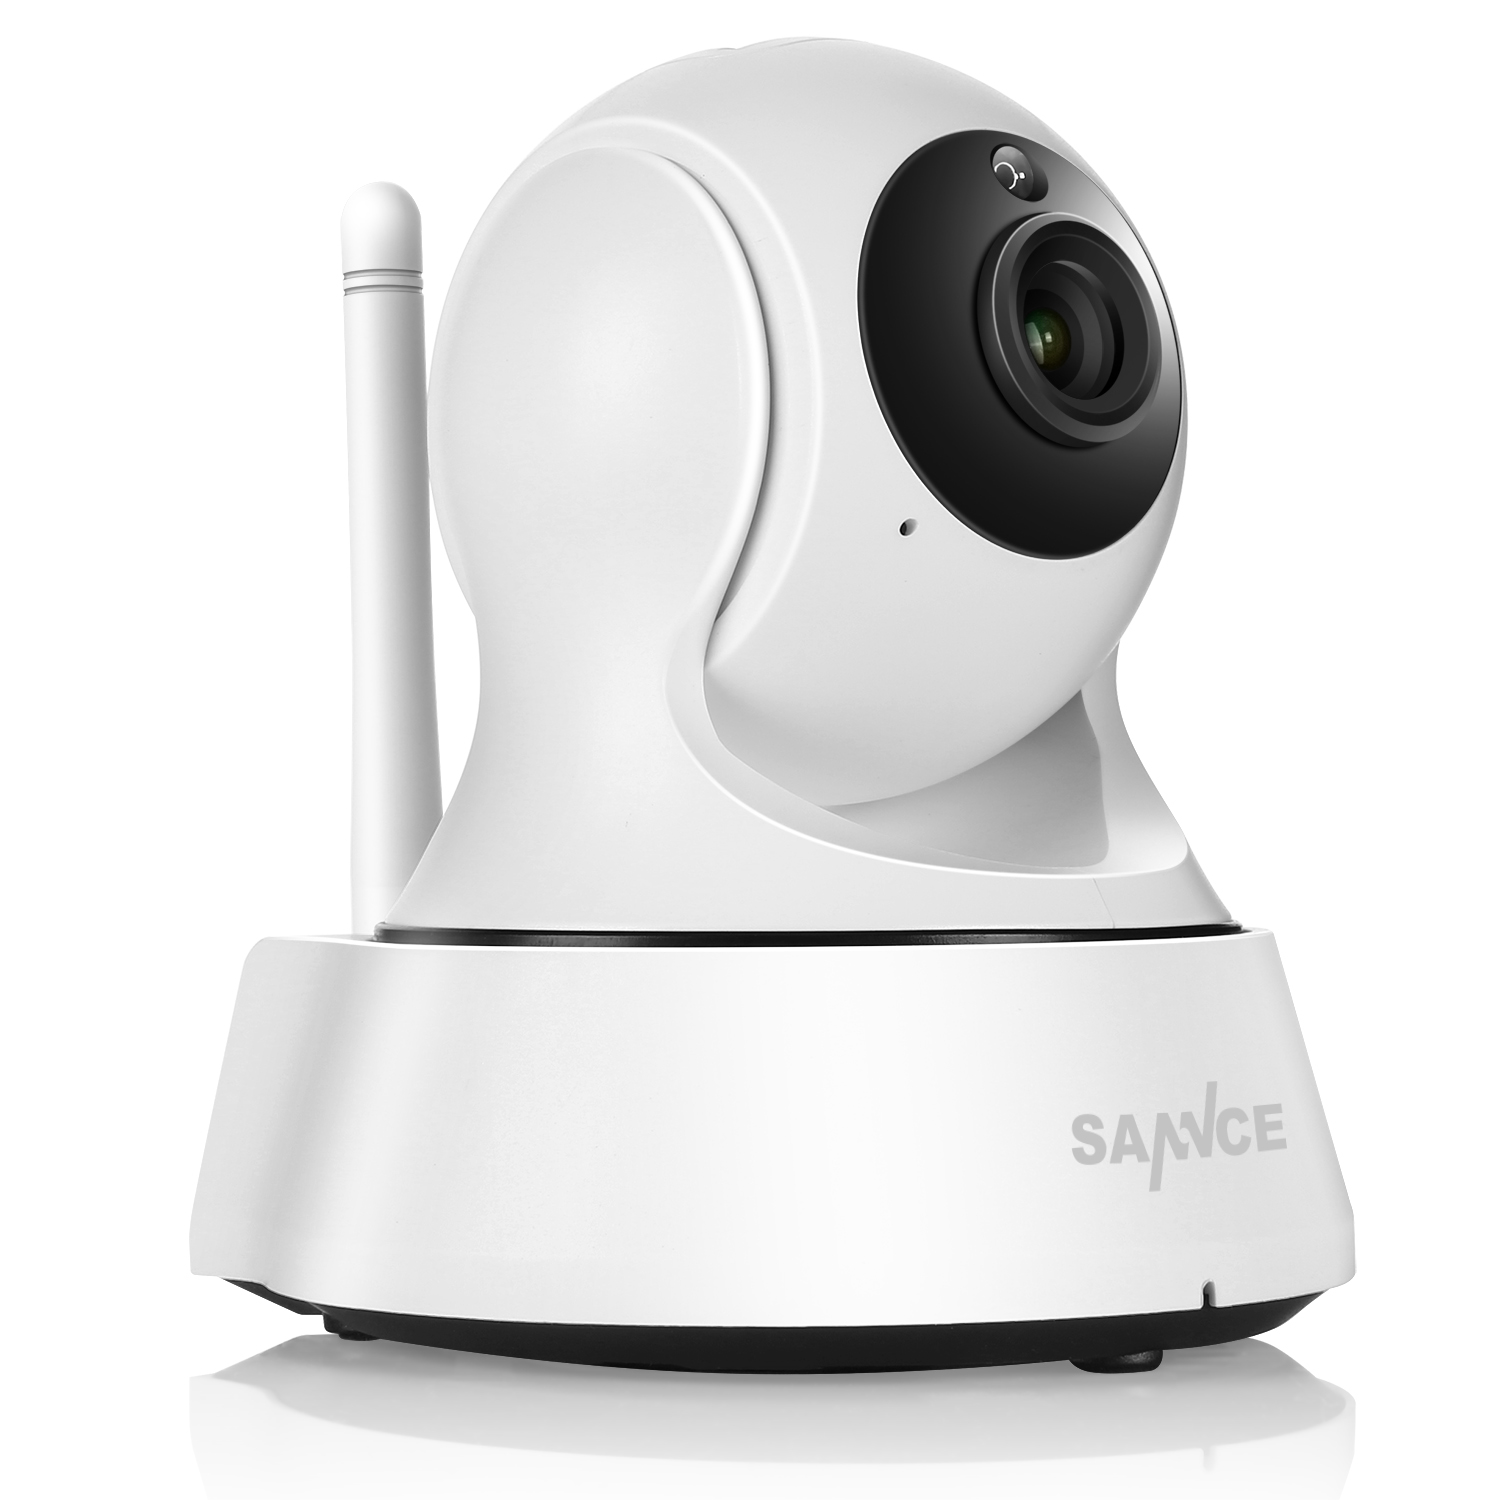 SANNCE Home Security IP Camera Wi-Fi Wireless Mini Network Camera Surveillance Wifi 720P Night Vision CCTV Camera Baby Monitor home security ip camera wireless smart wifi camera wi fi audio record surveillance hd mini cctv camera night vision network 2pcs